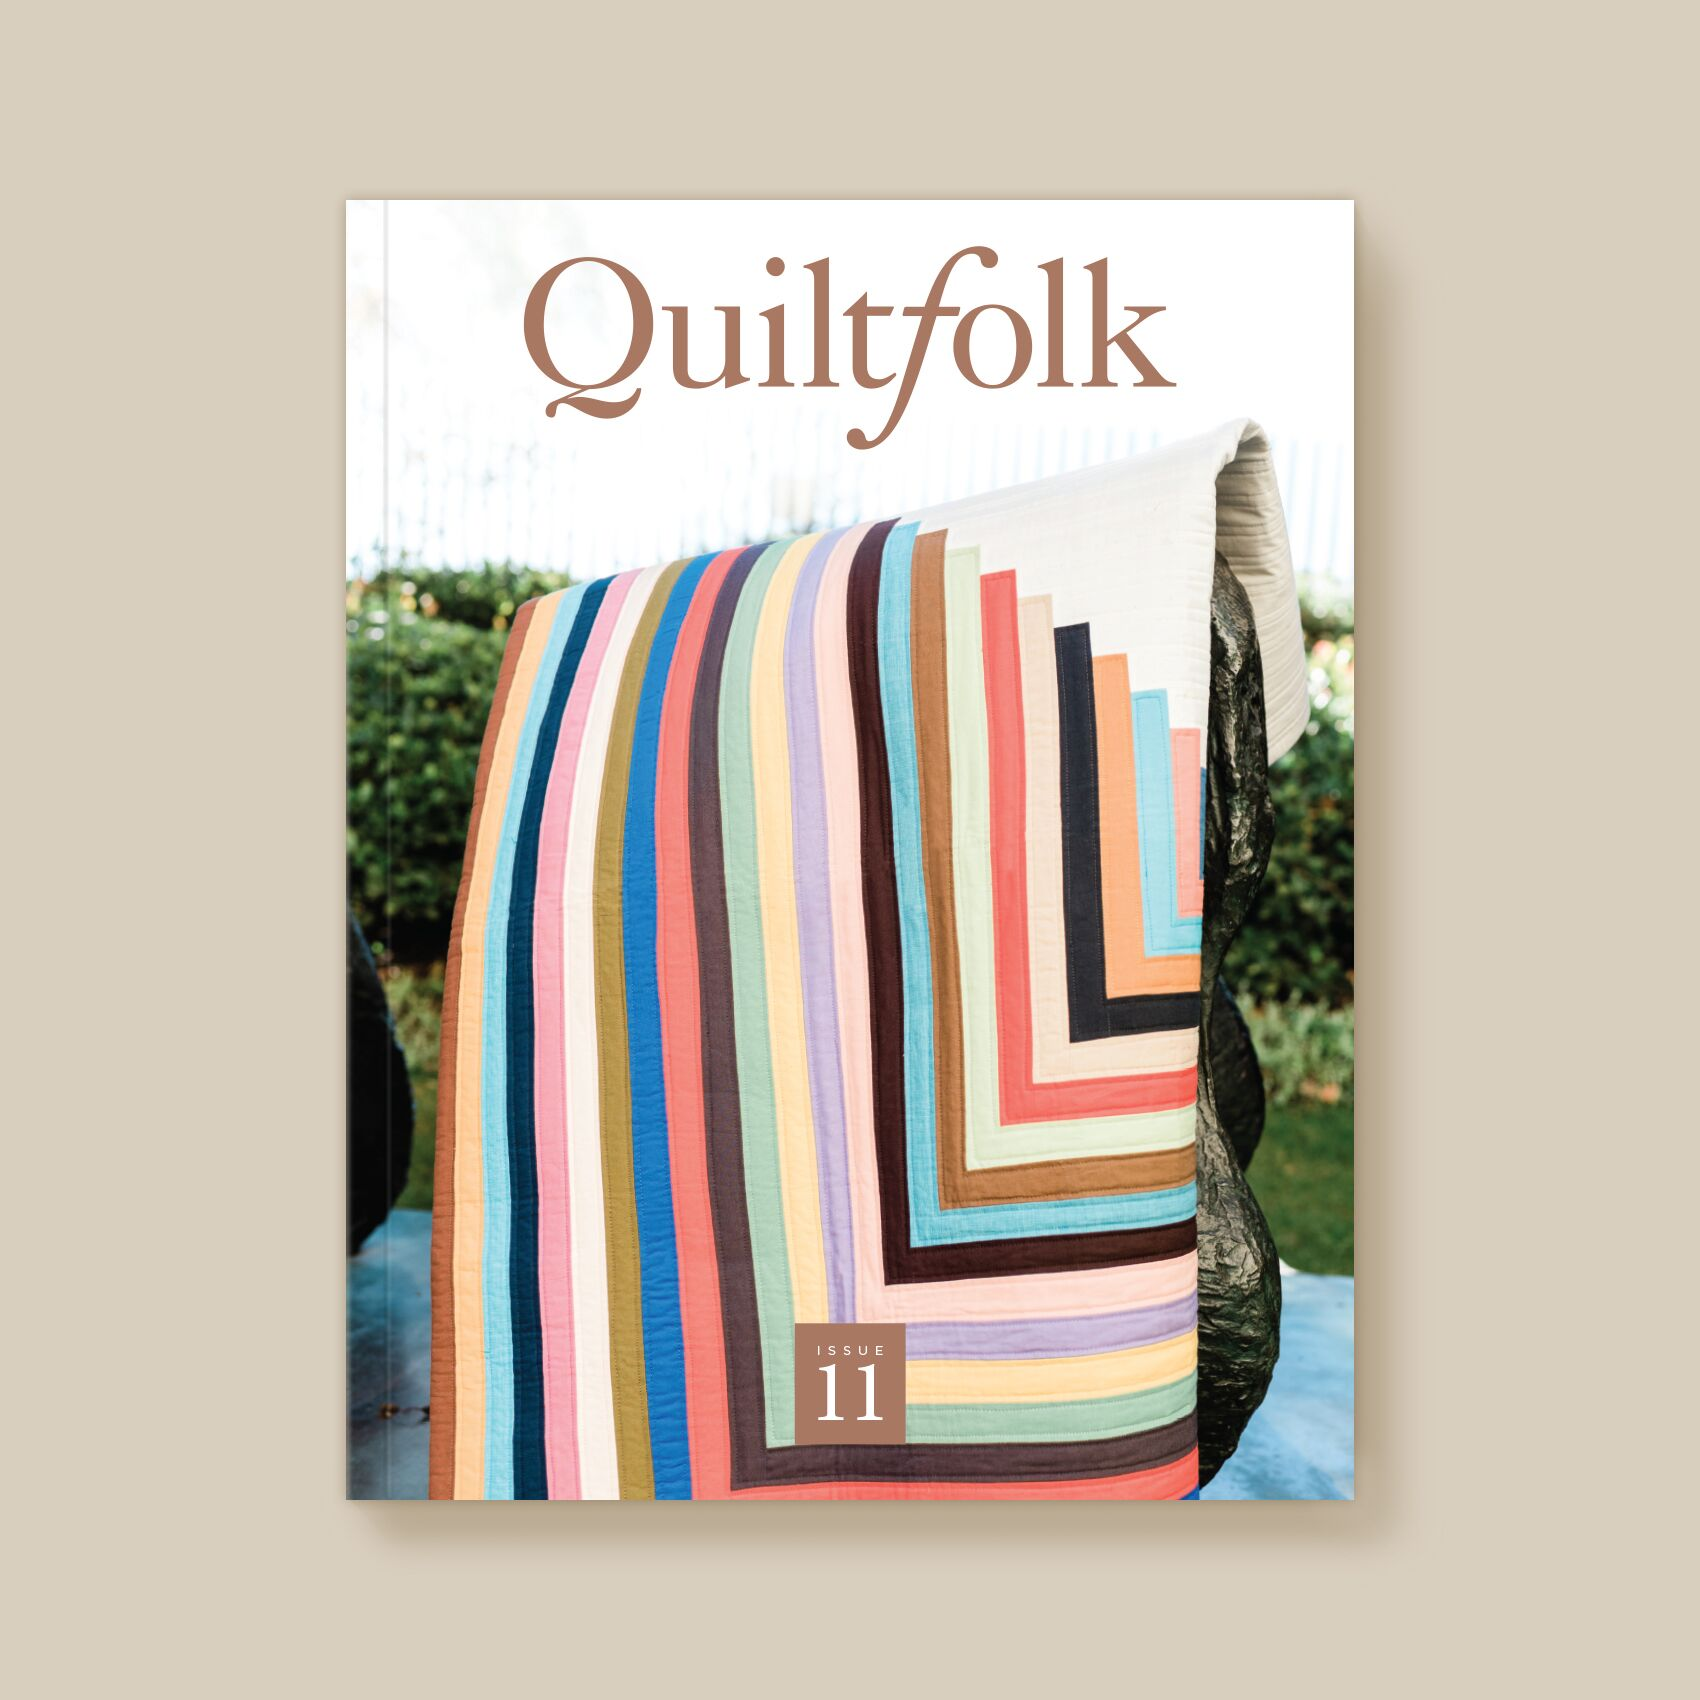 Quiltfolk Issue 11: Southern California